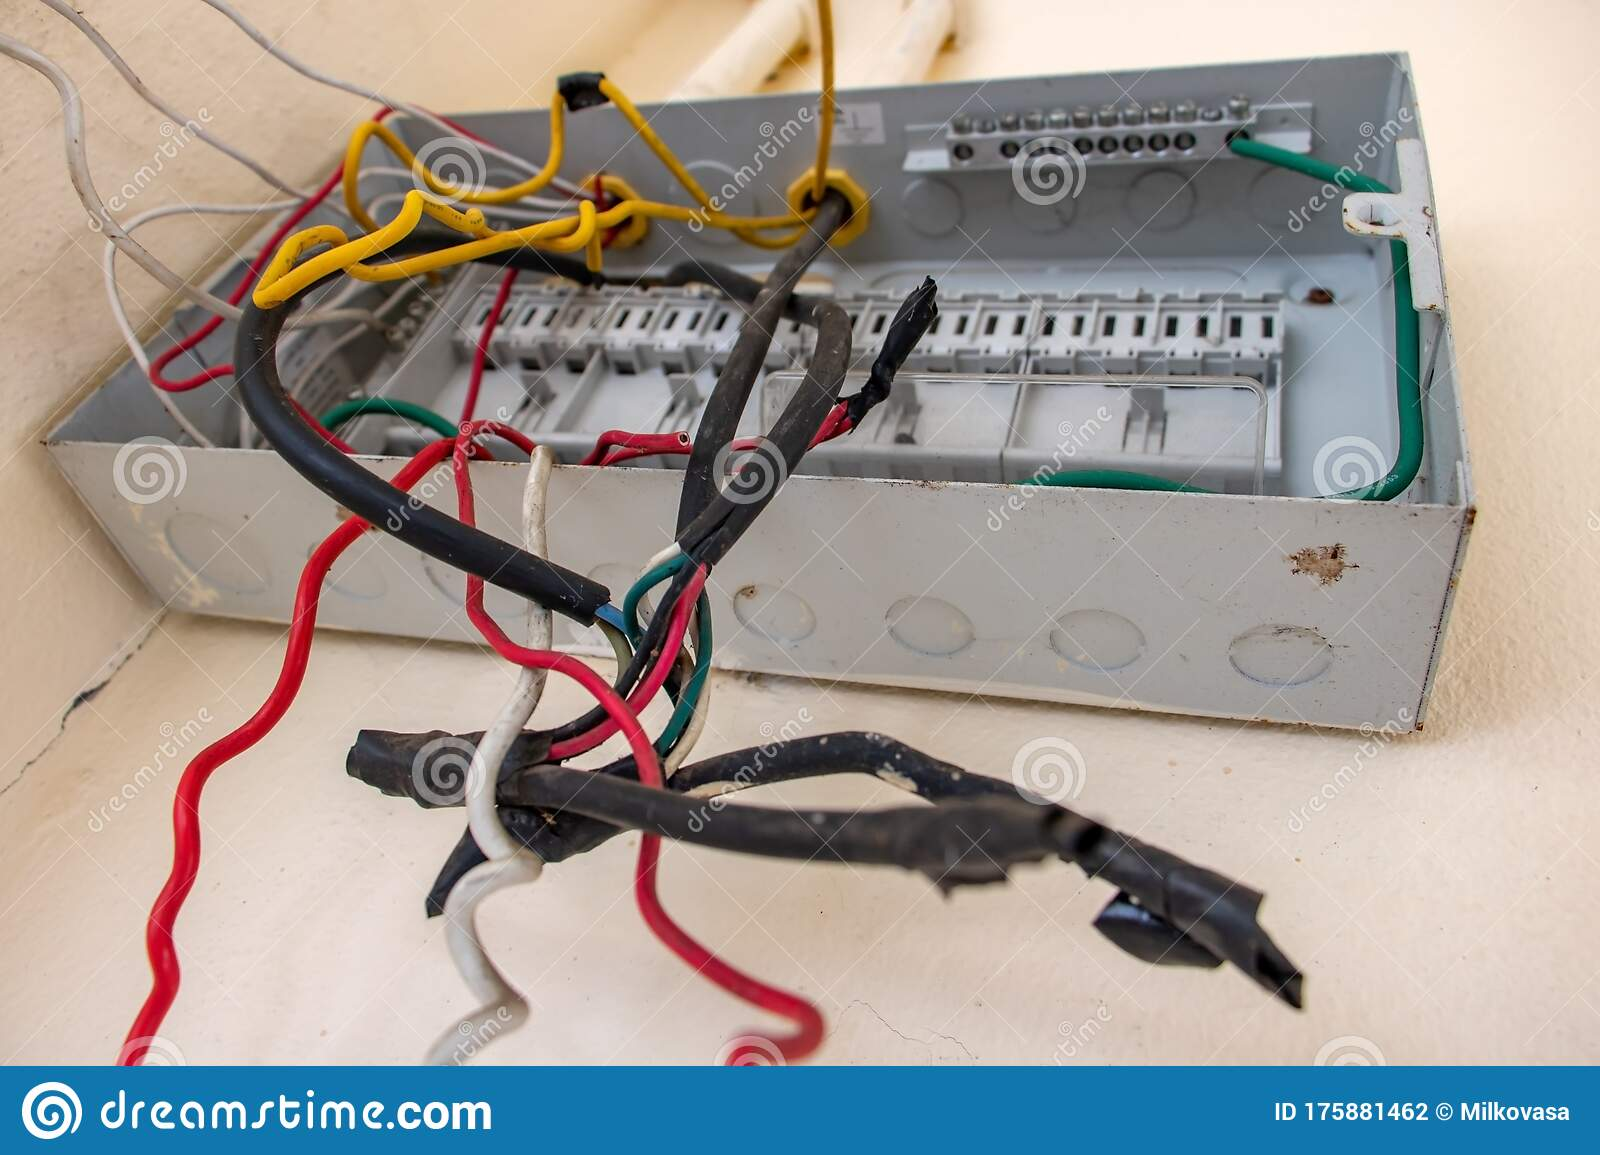 [SCHEMATICS_48EU]  A Open Empty Electricity Fuse Box With Cables On White Wall. Stock Photo -  Image of fusebox, empty: 175881462   Fuse Box Electricity      Dreamstime.com